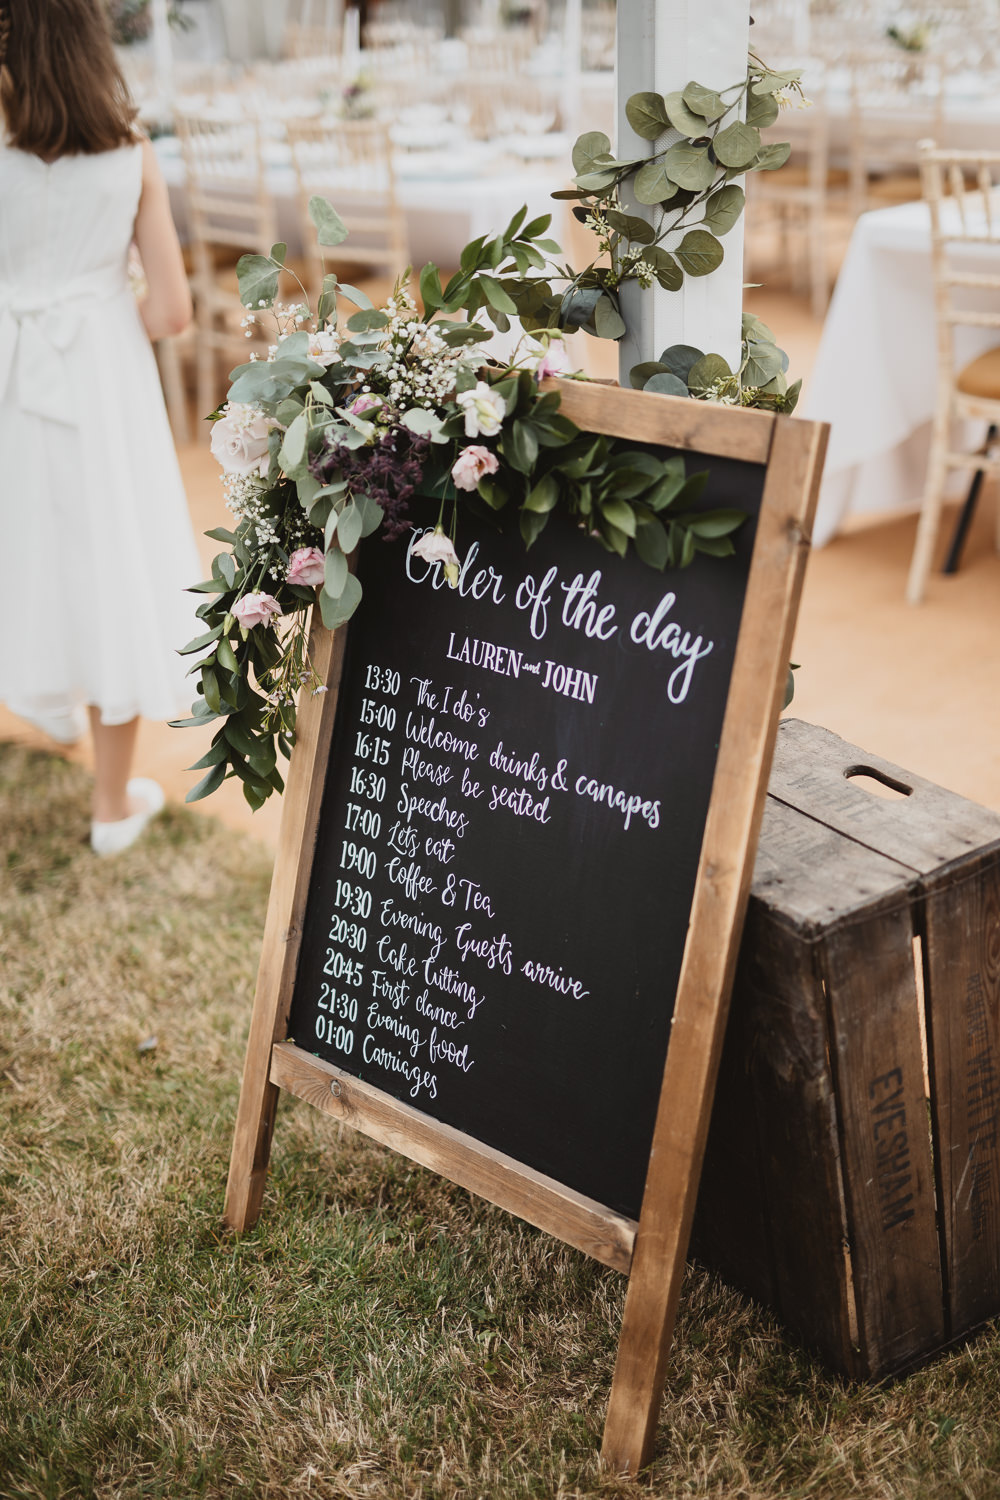 Black Board Chalk Sign Signs Signage Welcome Flowers Order of the Day Clear Marquee Wedding Sarah Brookes Photography